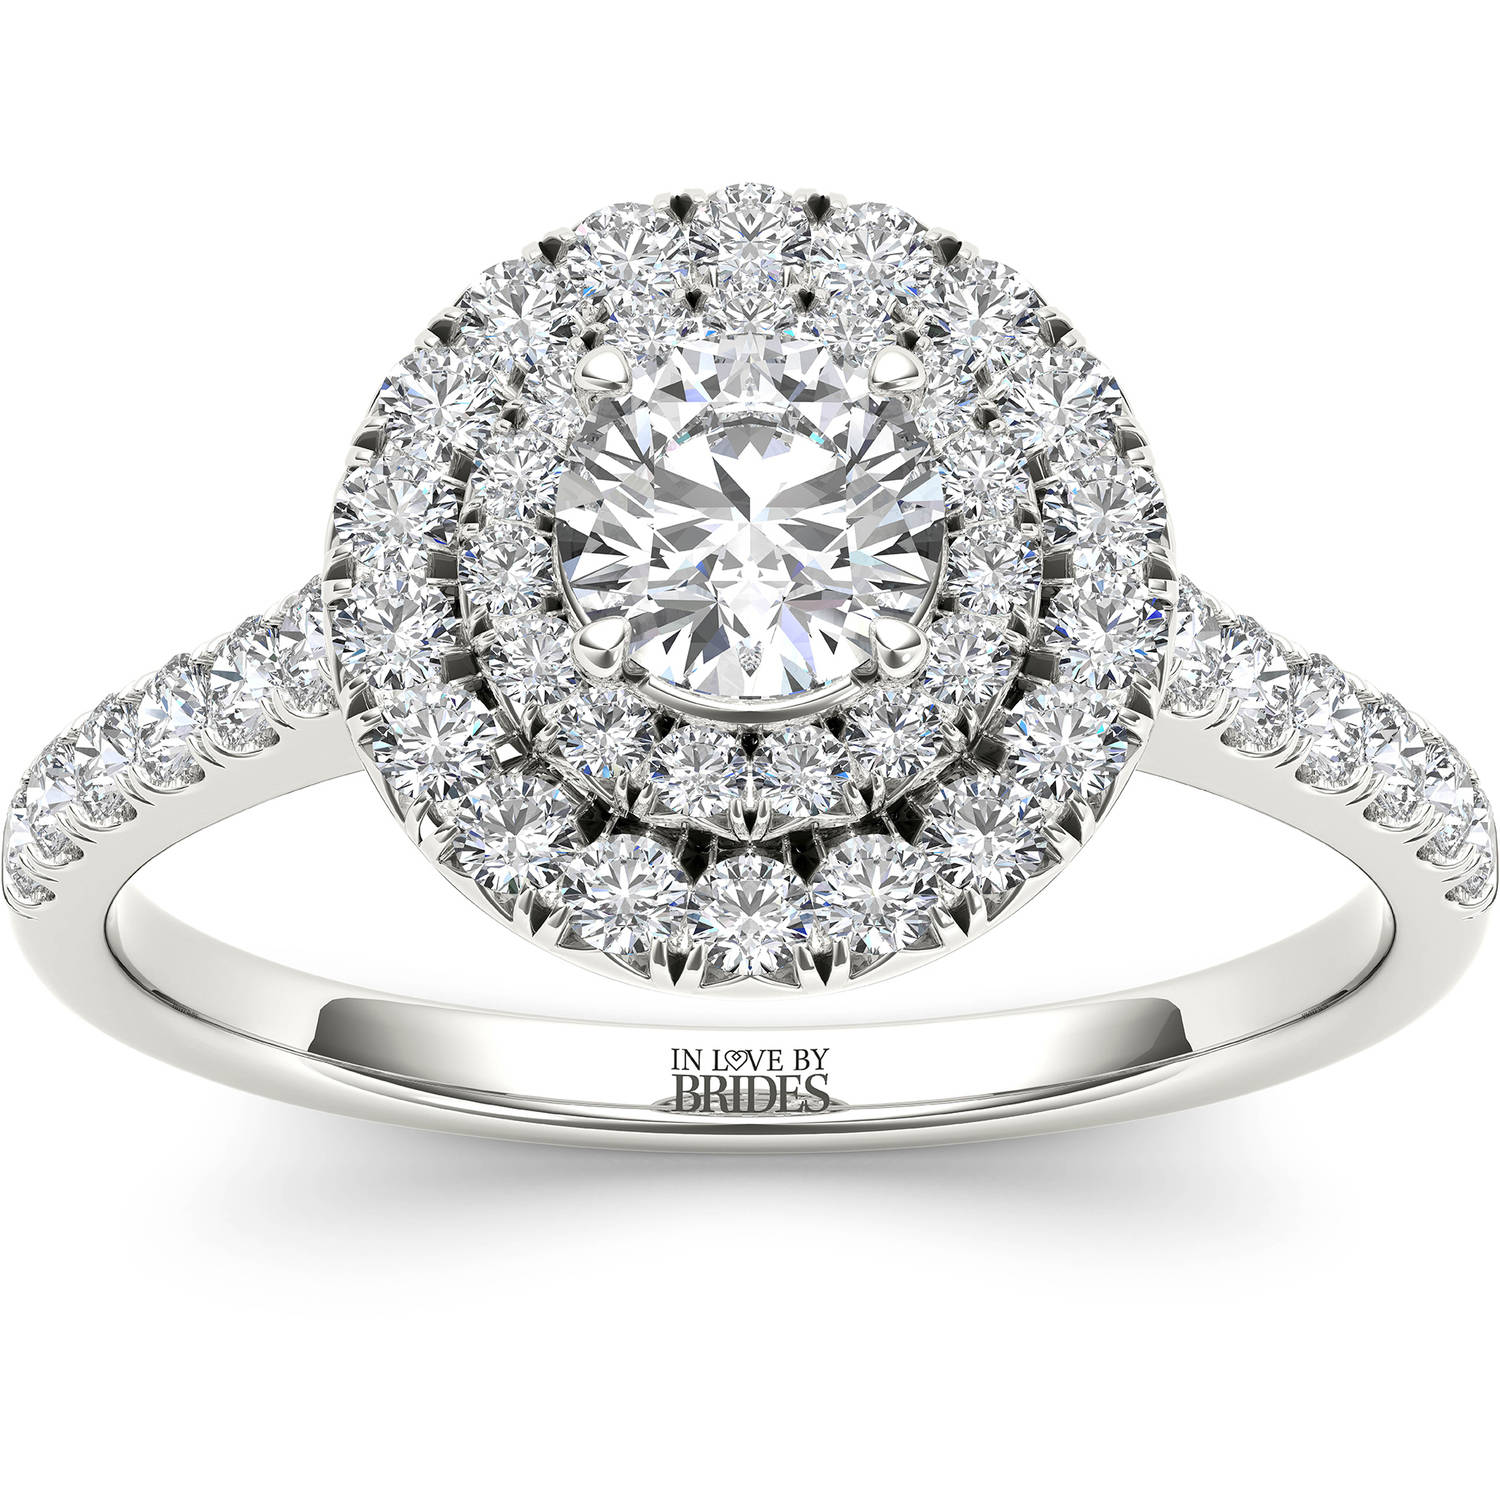 IN LOVE BY BRIDES 1.00 Carat T.W. Certified Diamond Round Classic Halo 14kt White Gold Engagement Ring